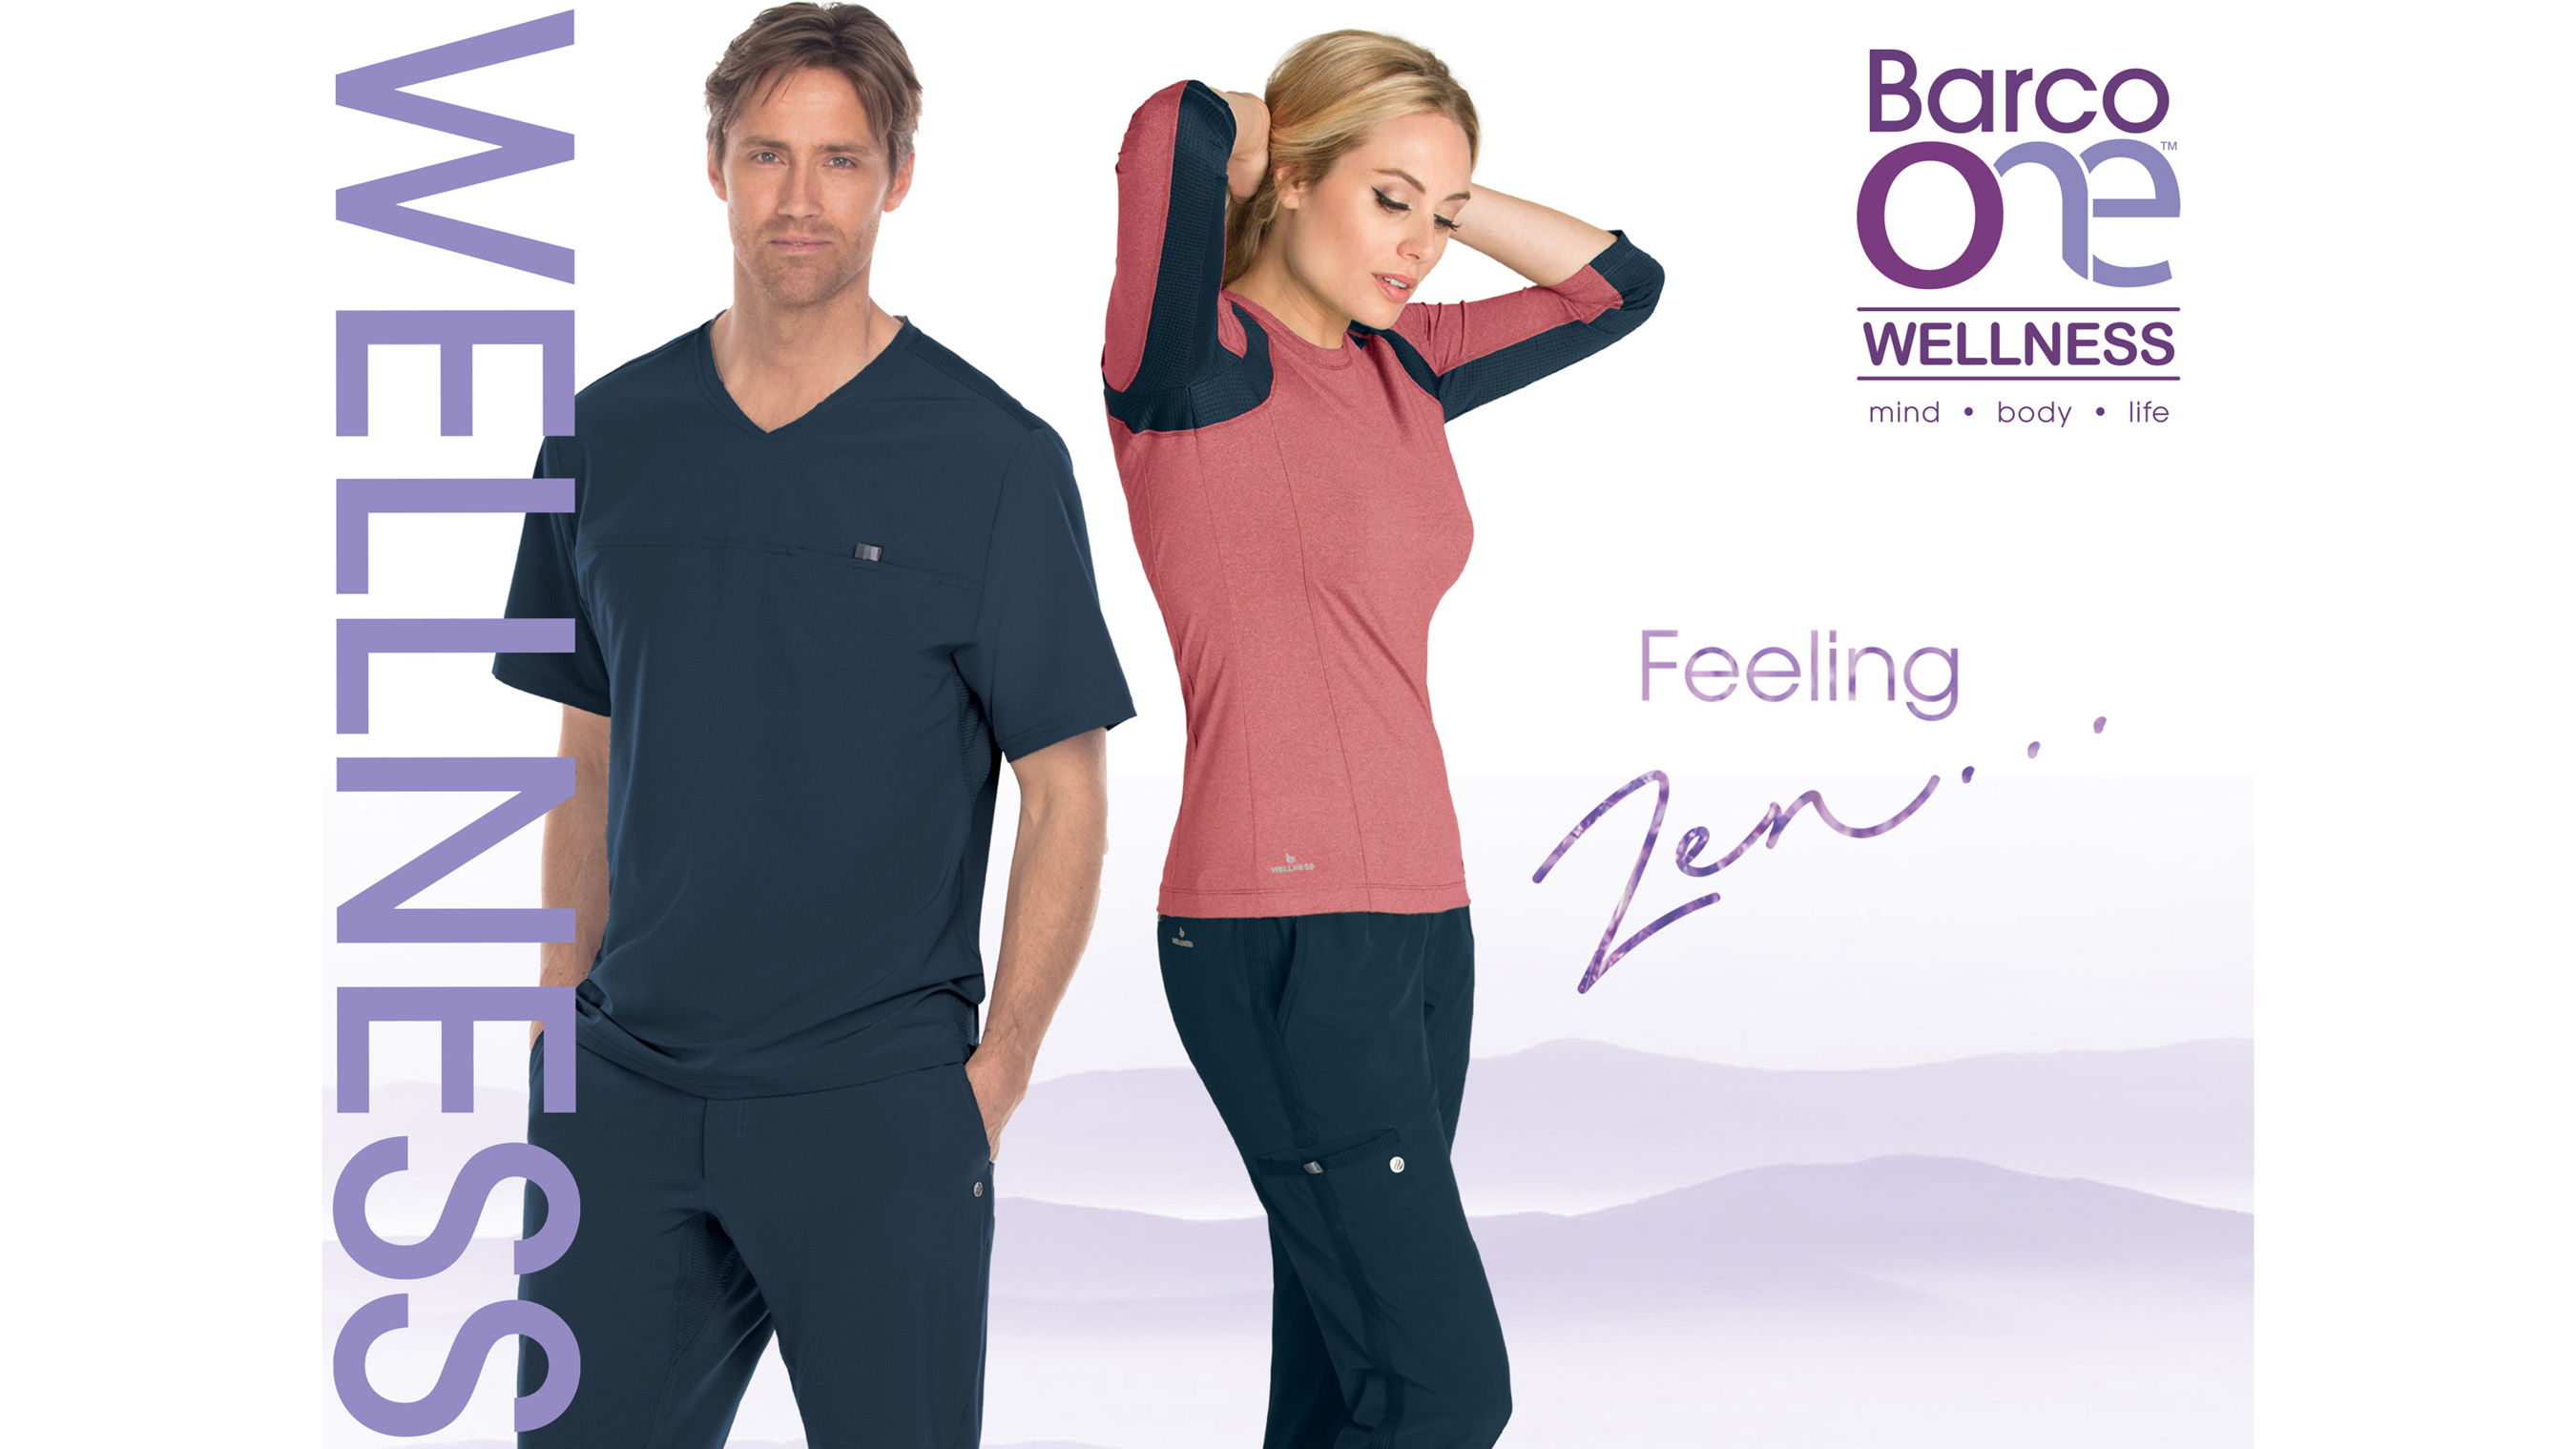 Thoughtfully designed to transition busy Healthcare Professionals from work-to-life and life-to-work with flattering silhouettes and layering pieces.